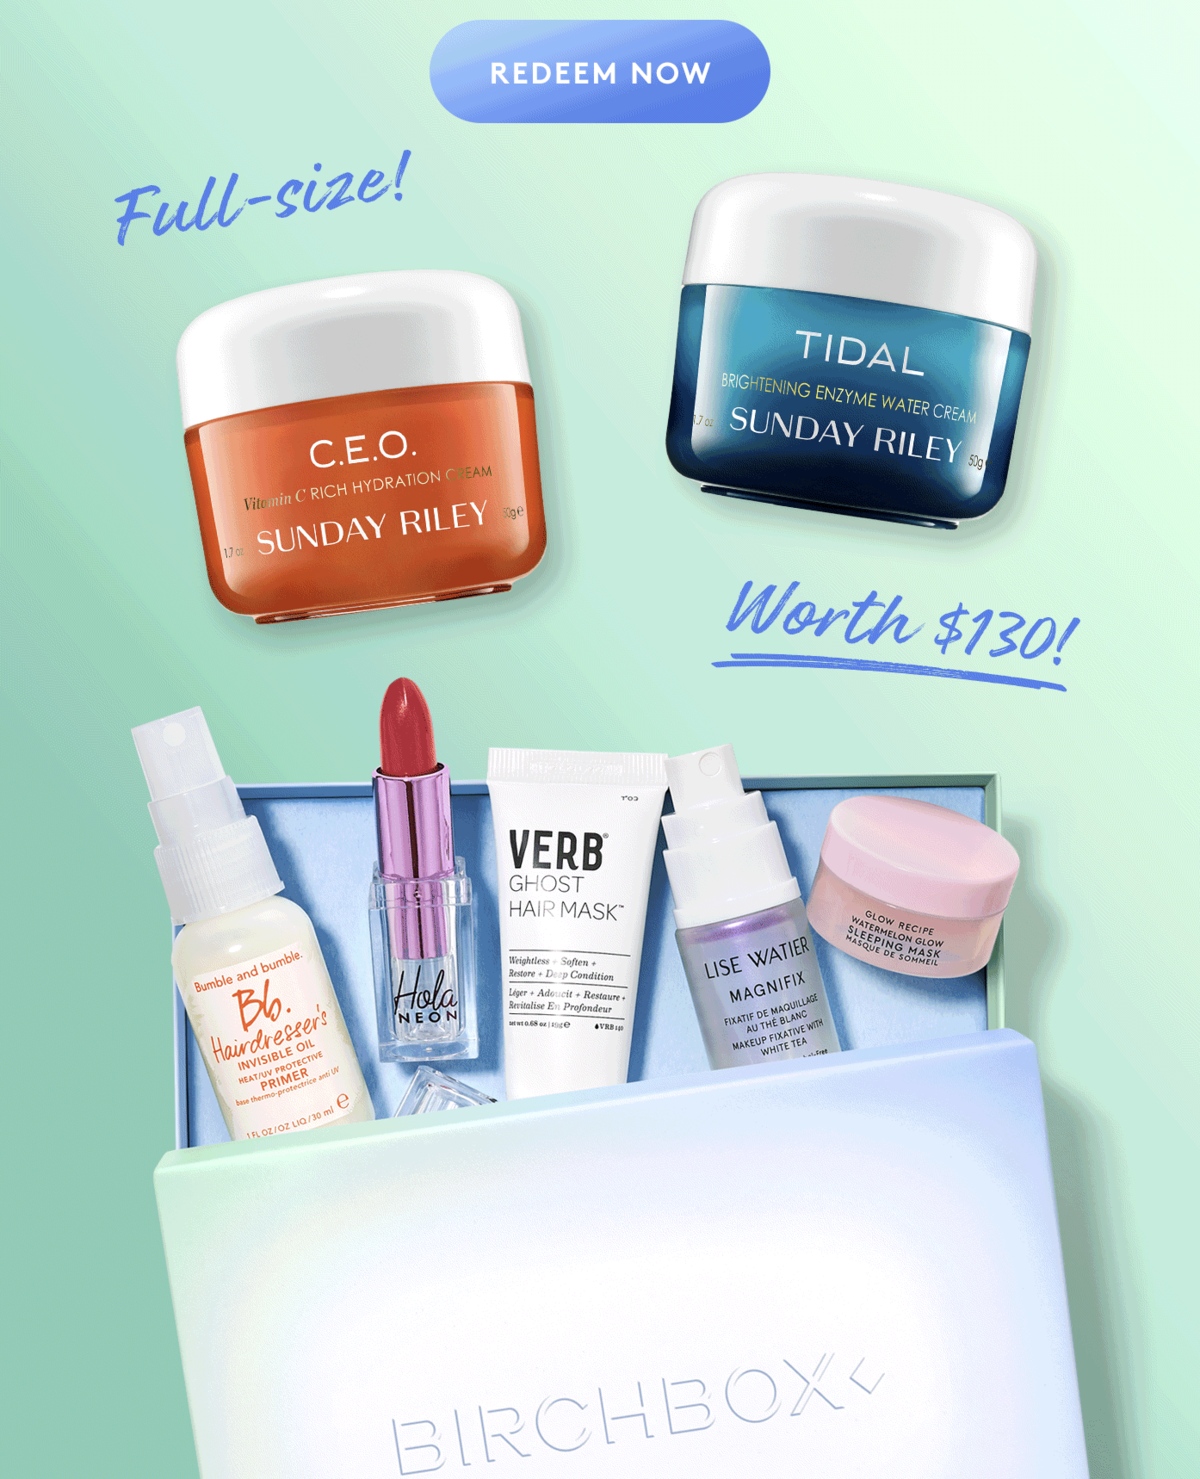 Birchbox Coupon Code – Free Sunday Riley Duo with 12-Month Subscription